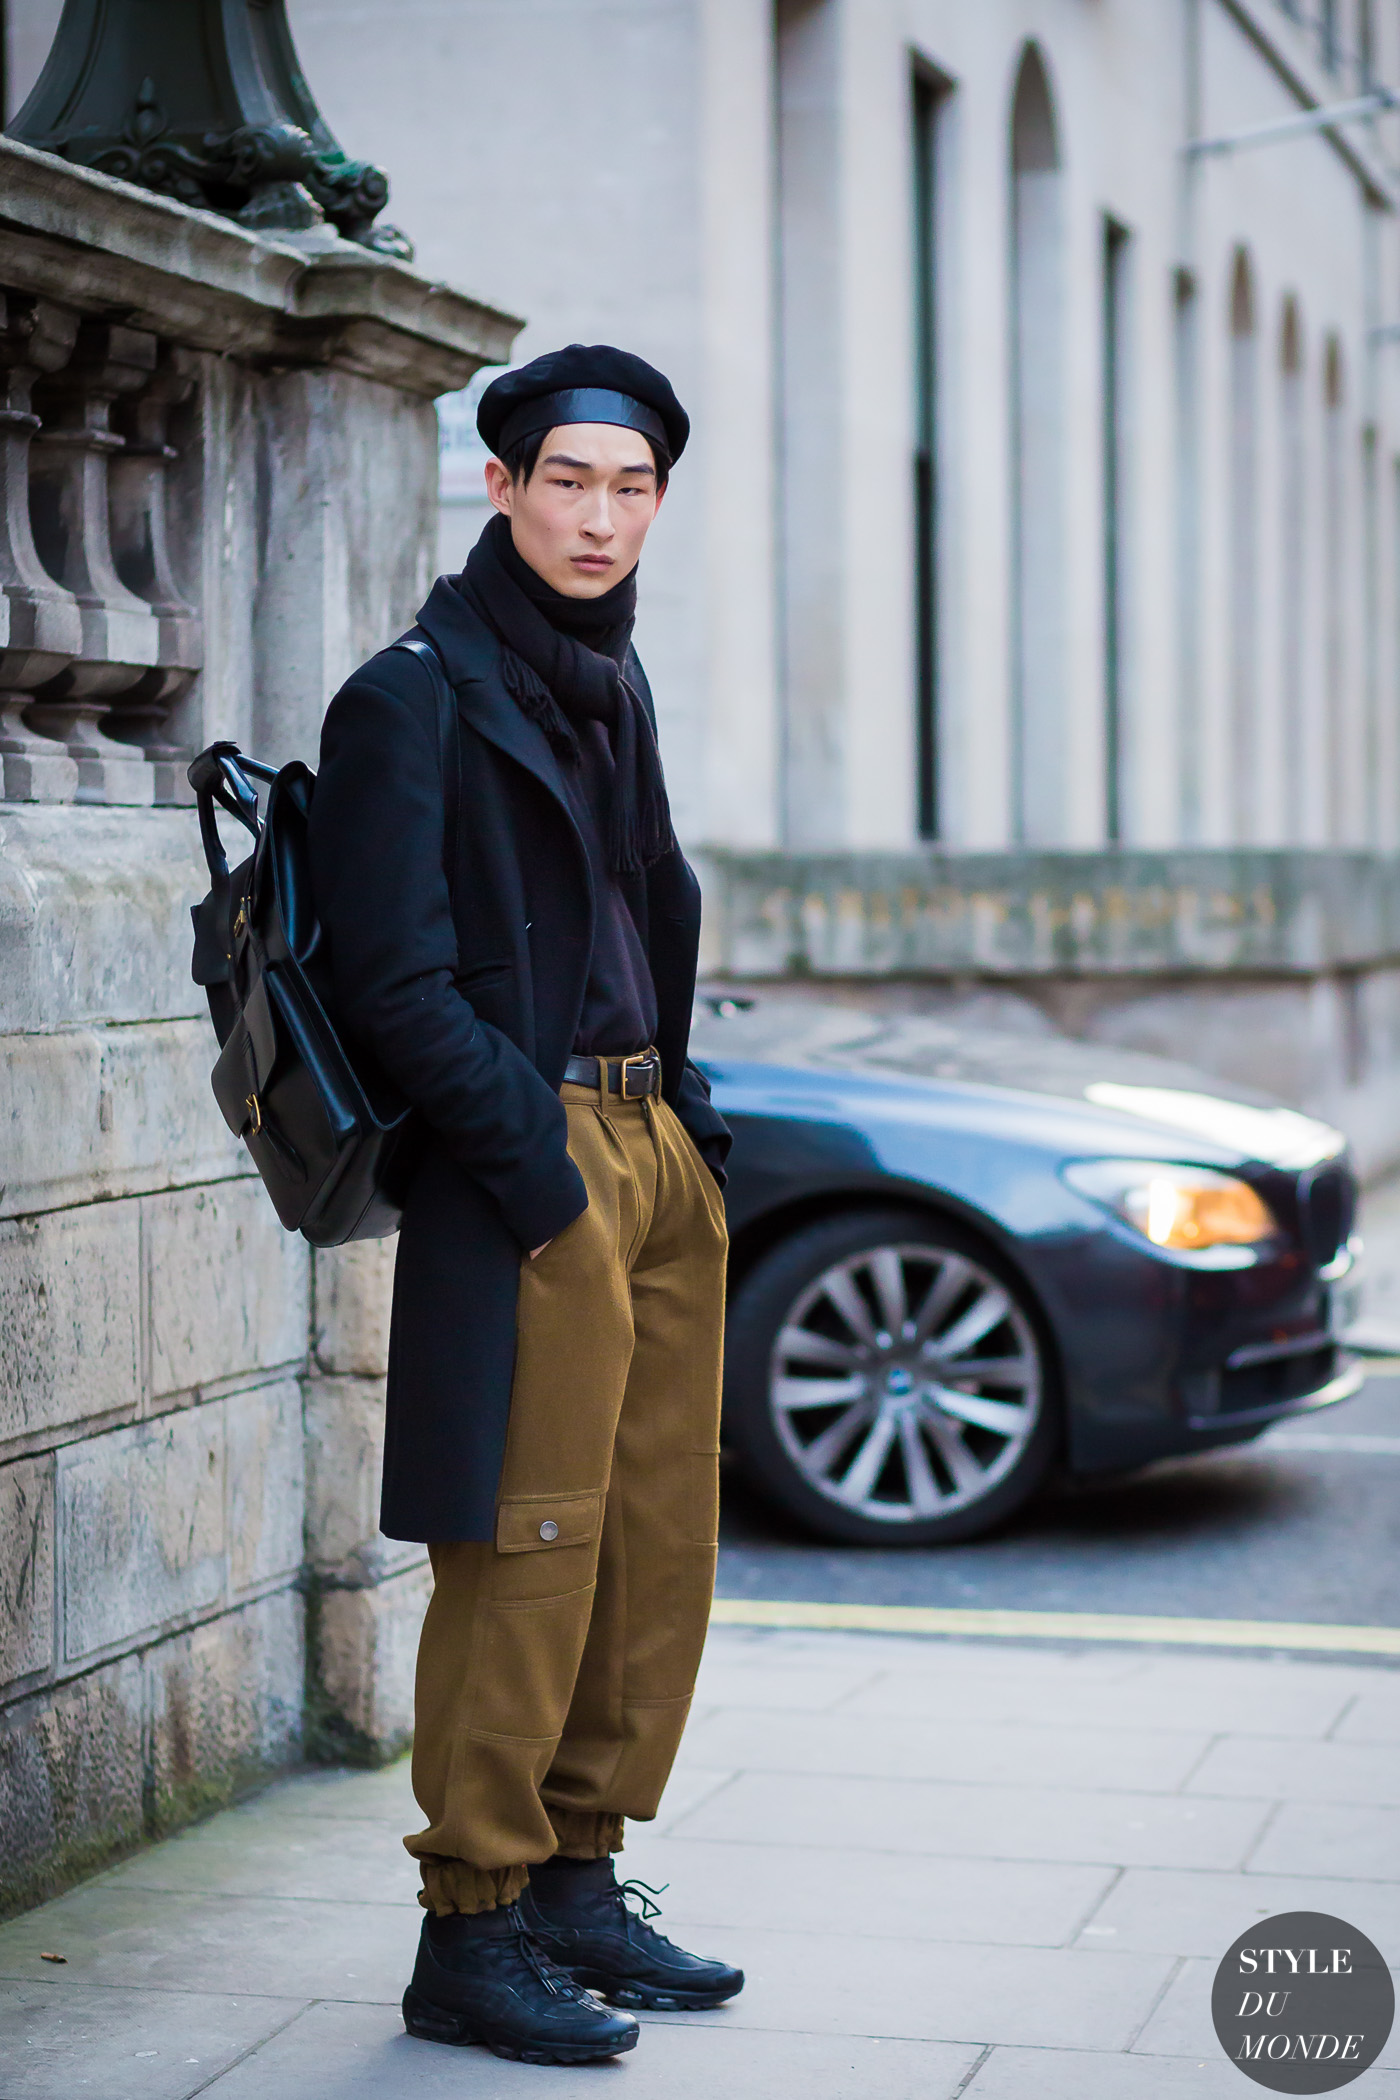 Sang Woo Kim Street Style Street Fashion Streetsnaps by STYLEDUMONDE Street Style Fashion Photography